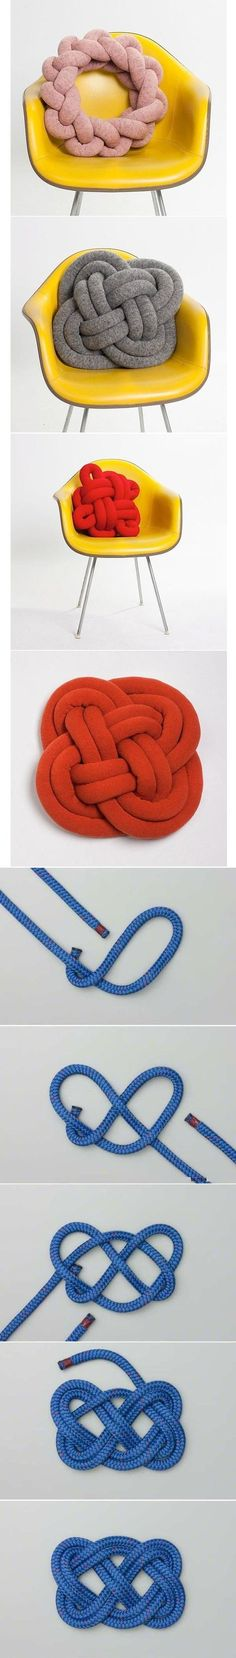 A knot pillow is a fun way to